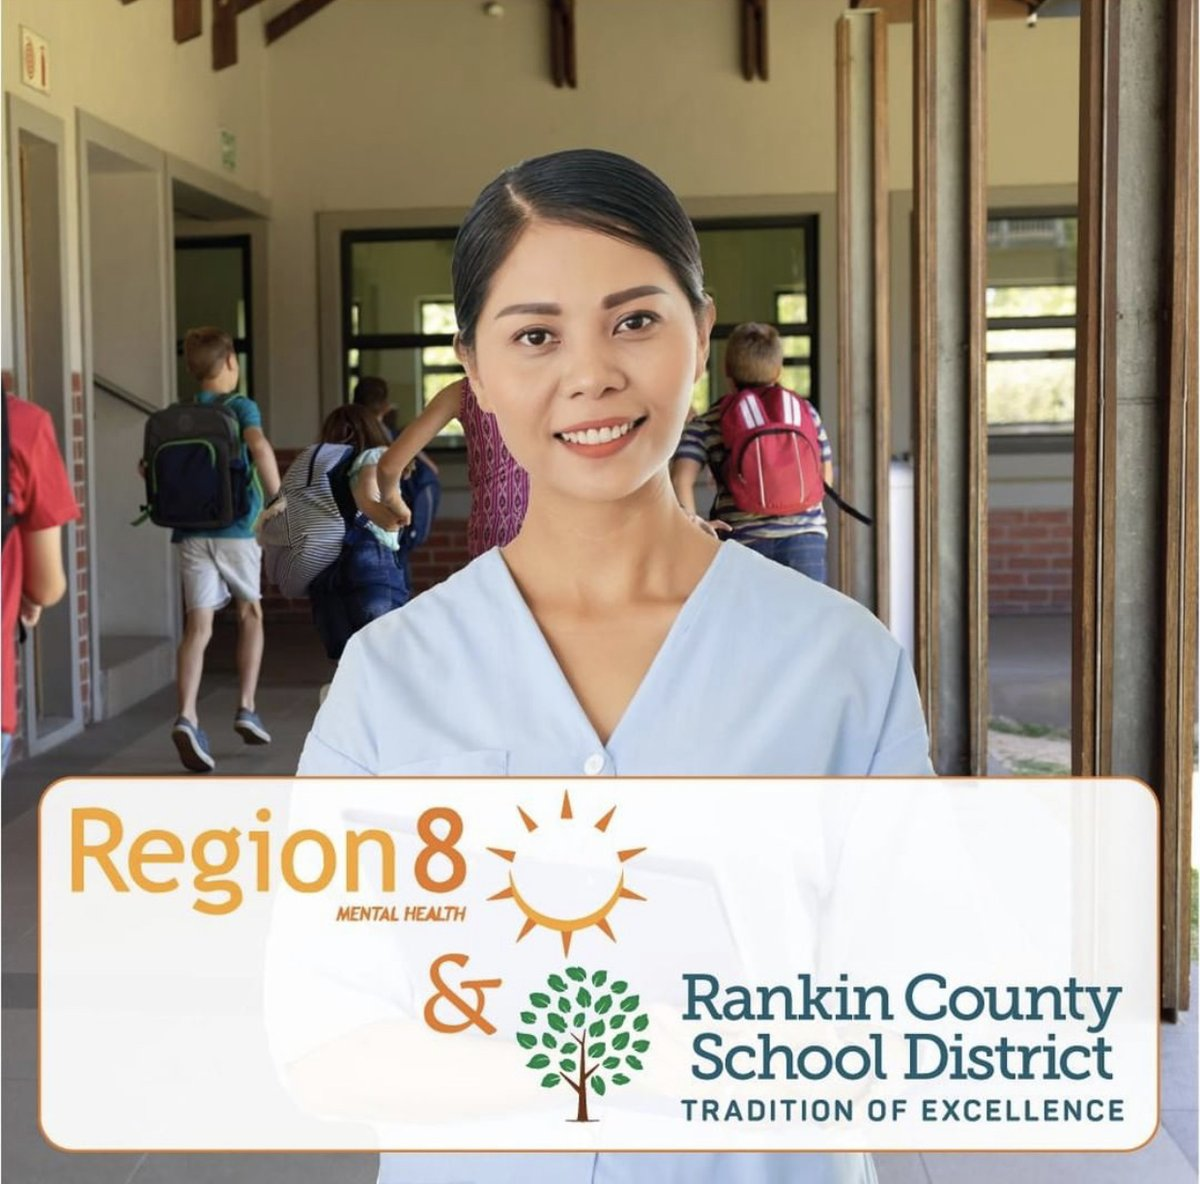 Region 8 is now hiring school-based nurses to serve in the Rankin County School District. Visit  for more information and to apply. #RCSDg2b #traditionofexcellence